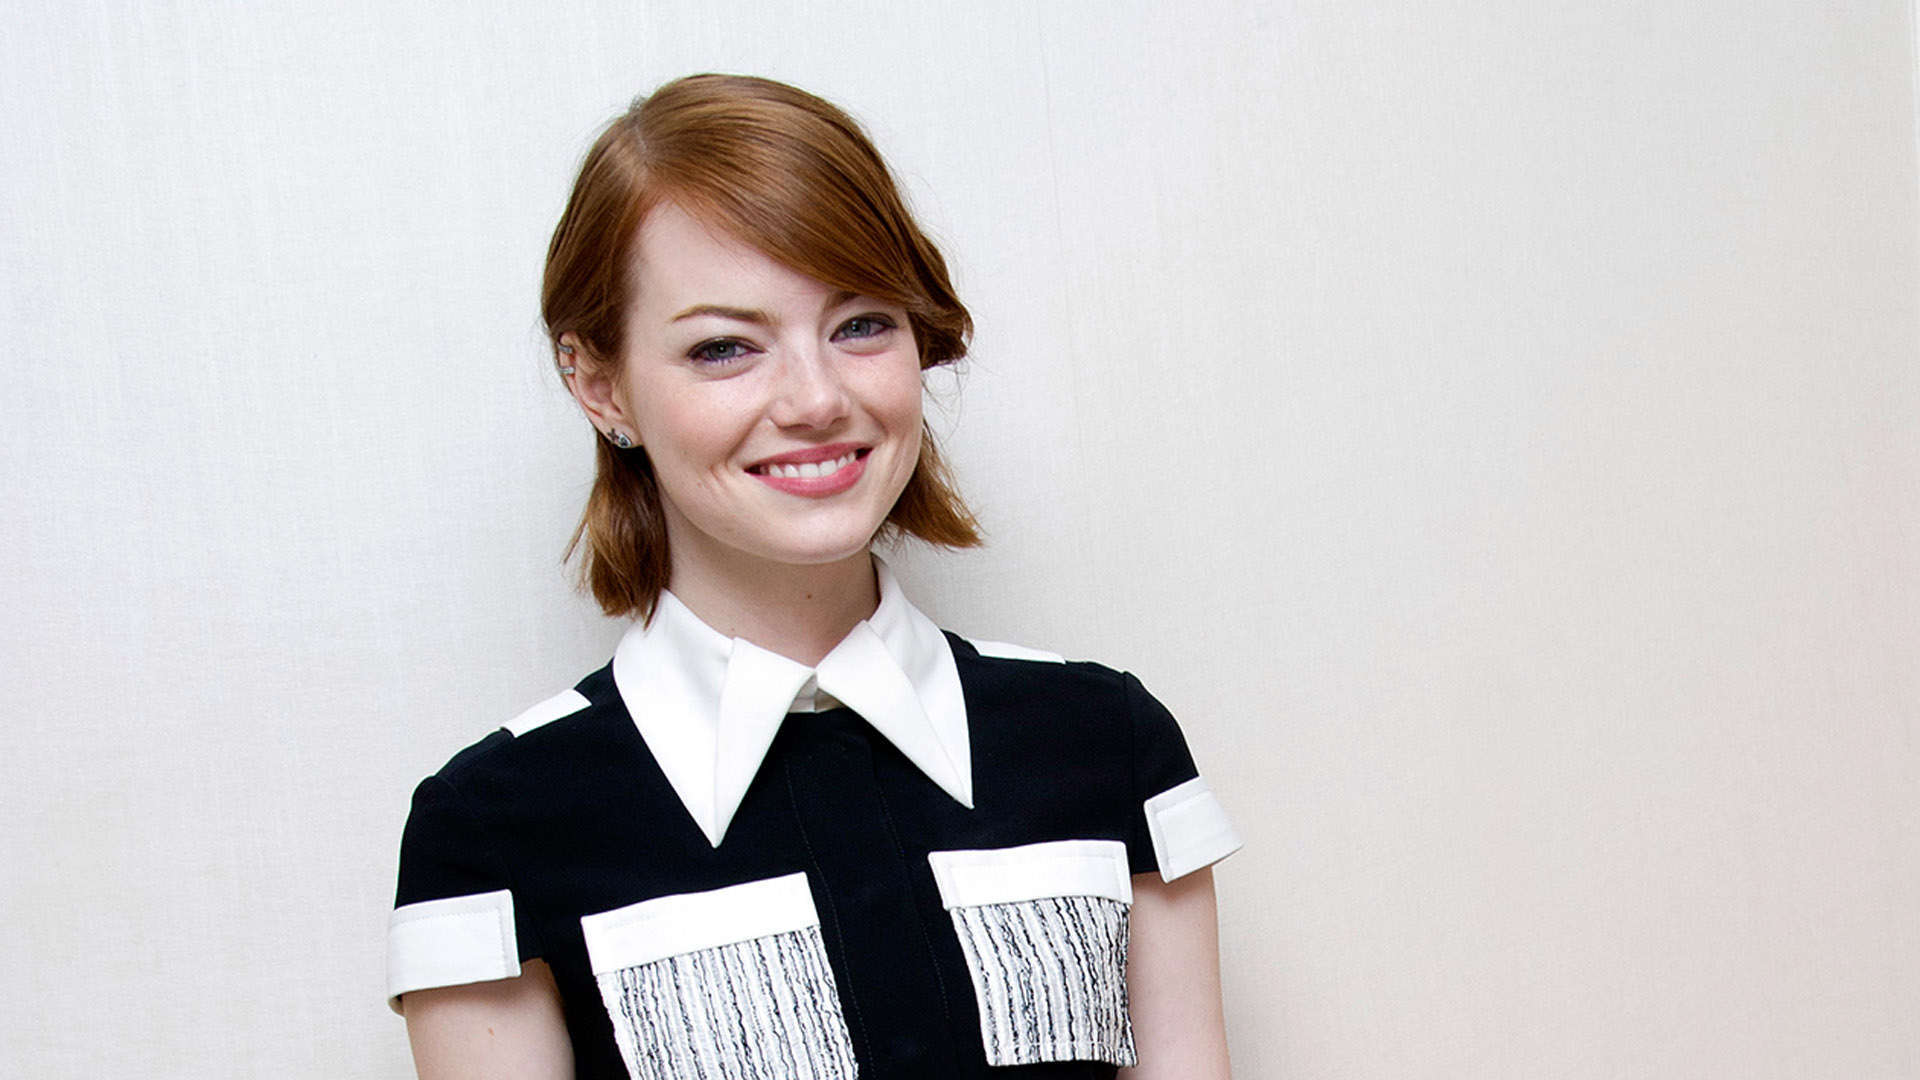 emma stone cute computer background 1390